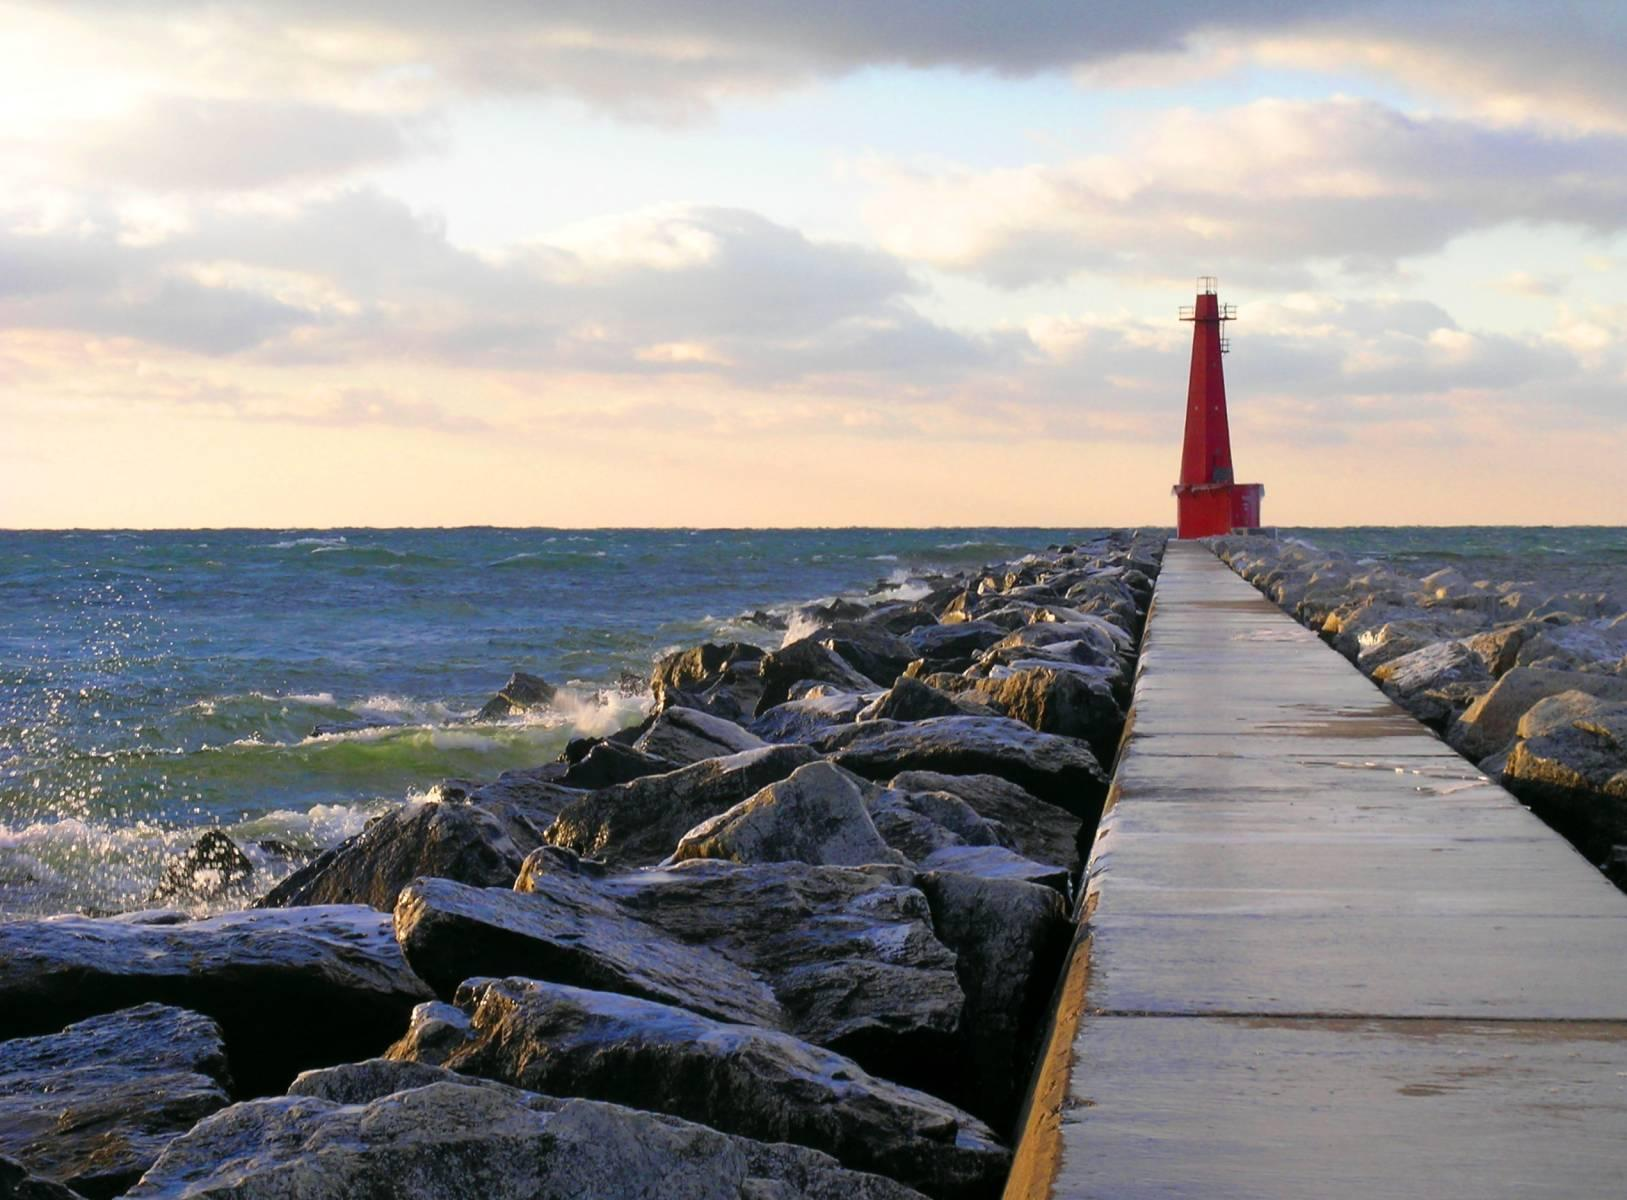 Trump S Budget Chops Sea Grant Program And Its Aid To Towns On Great Lakes Coast